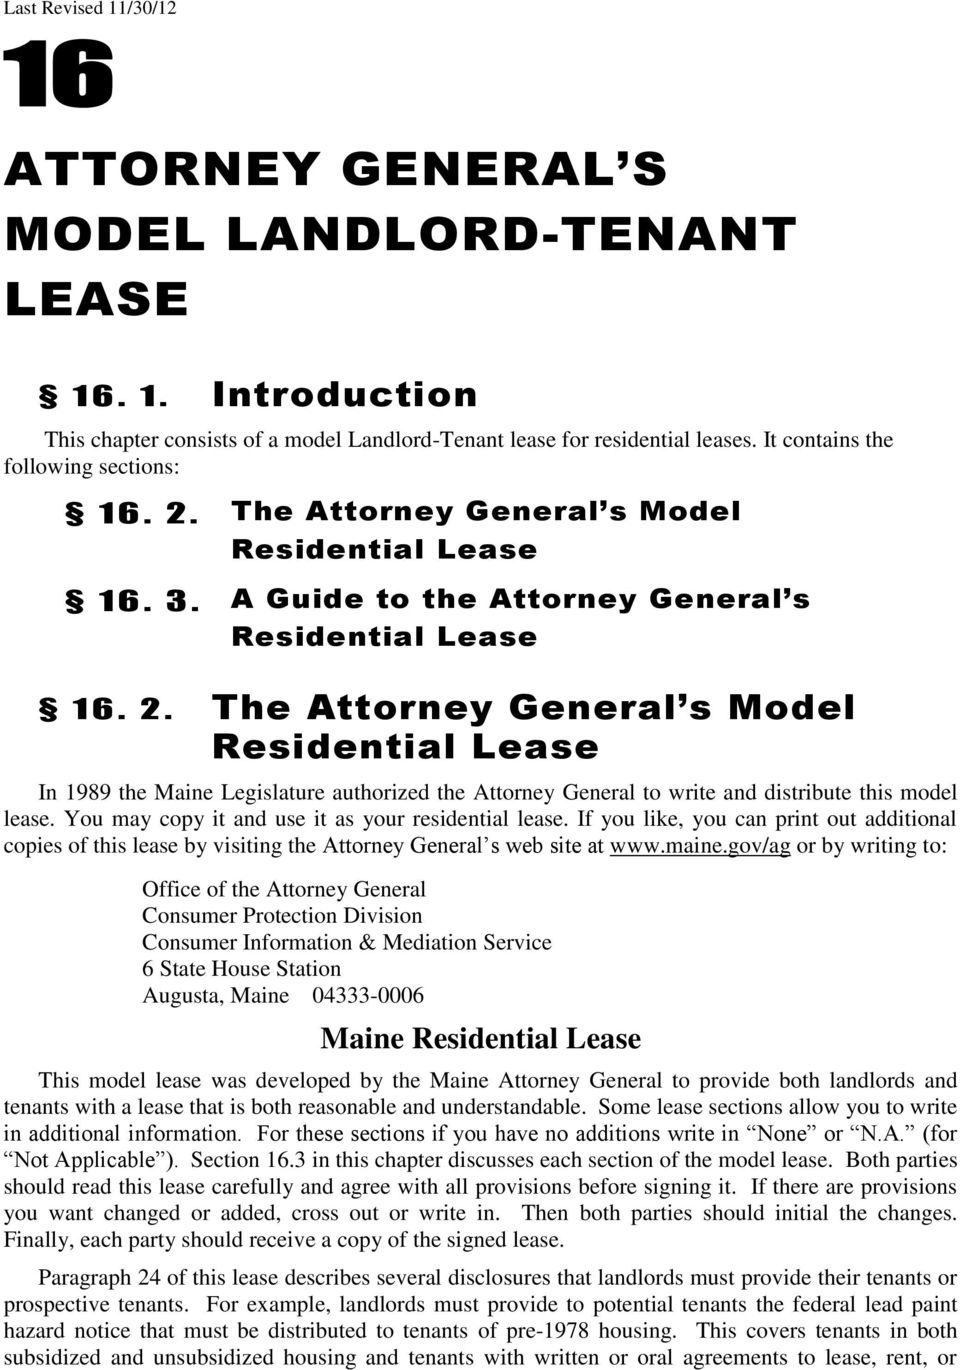 You may copy it and use it as your residential lease. If you like, you can print out additional copies of this lease by visiting the Attorney General s web site at www.maine.